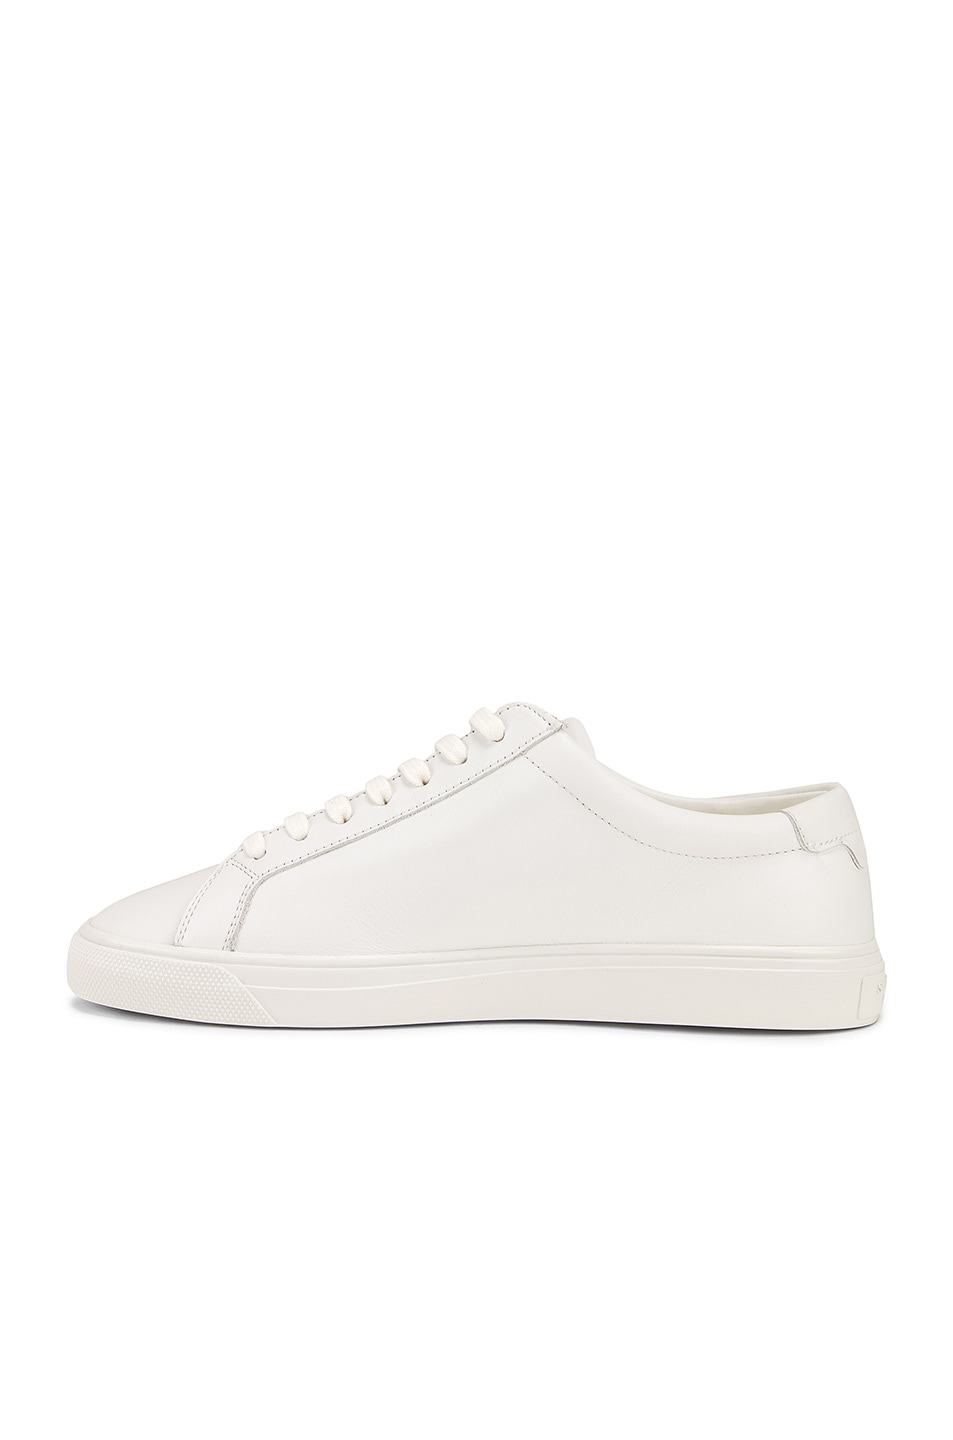 Image 5 of Saint Laurent Andy Sneaker in White